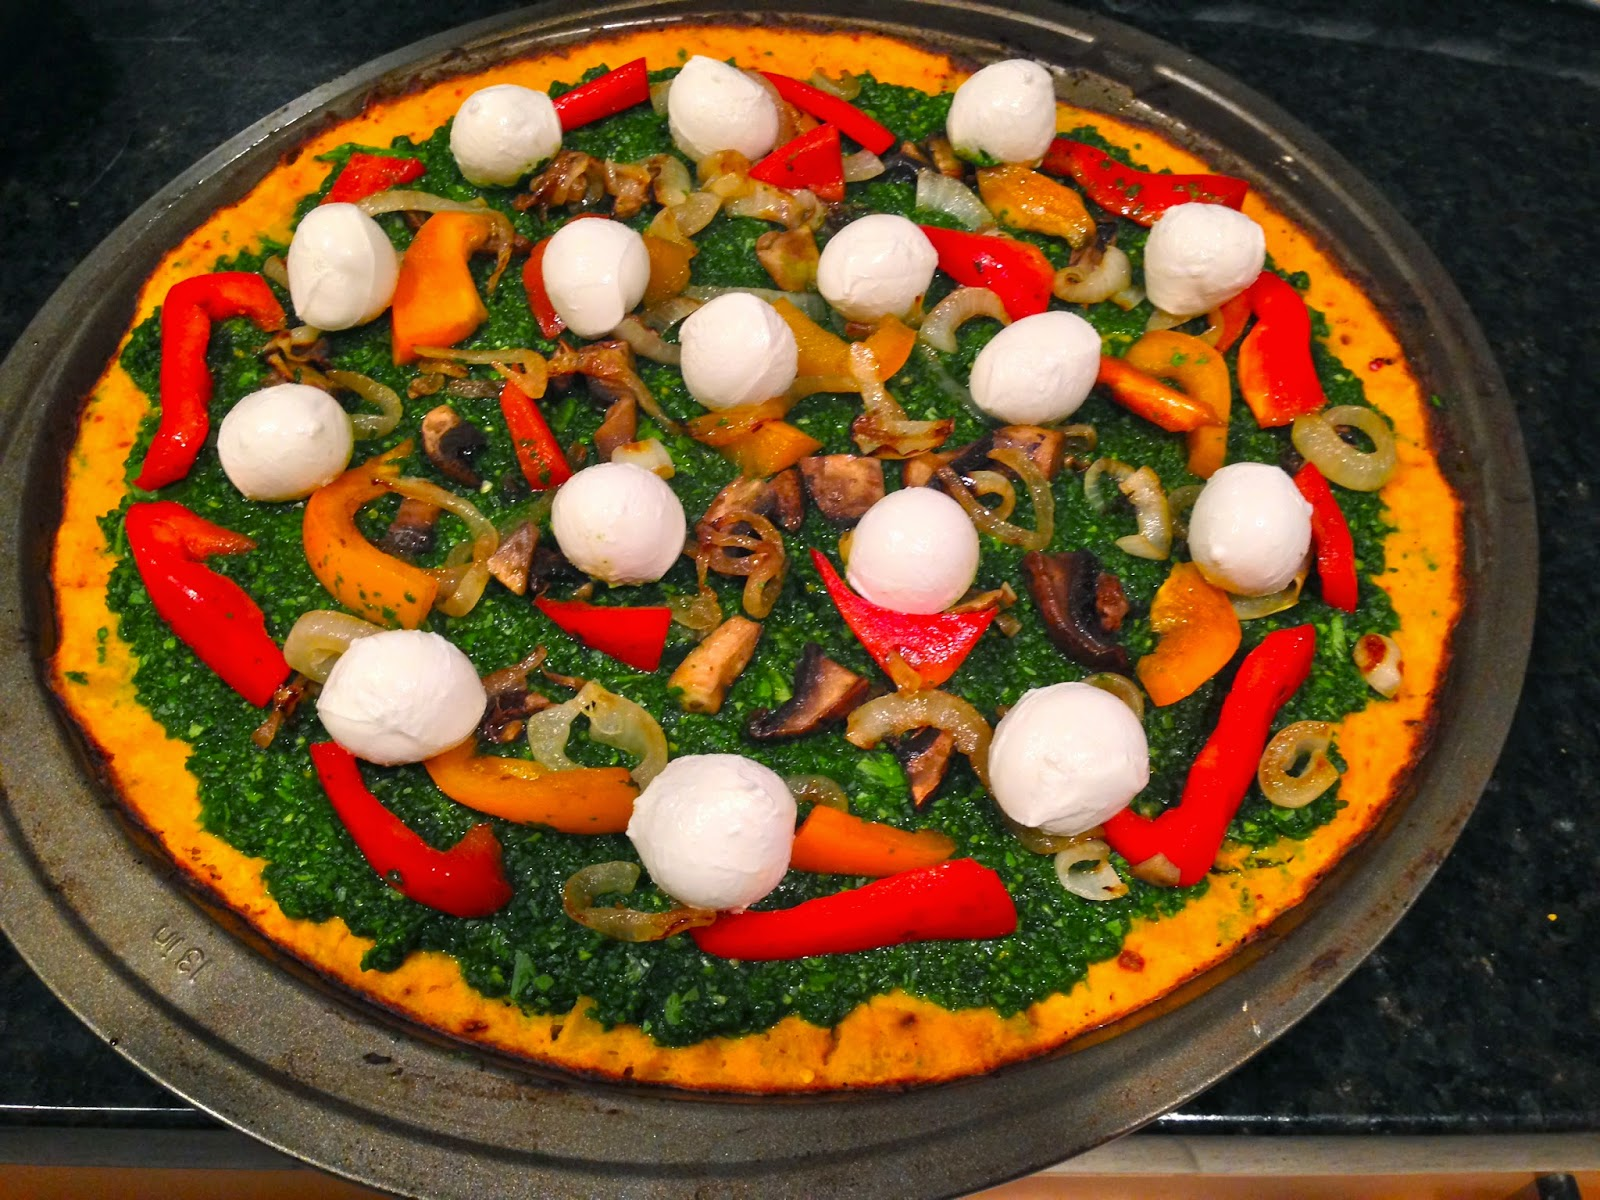 Butternutsquash Pizza Crust & Spinach, Garlic, Cilantro Pesto